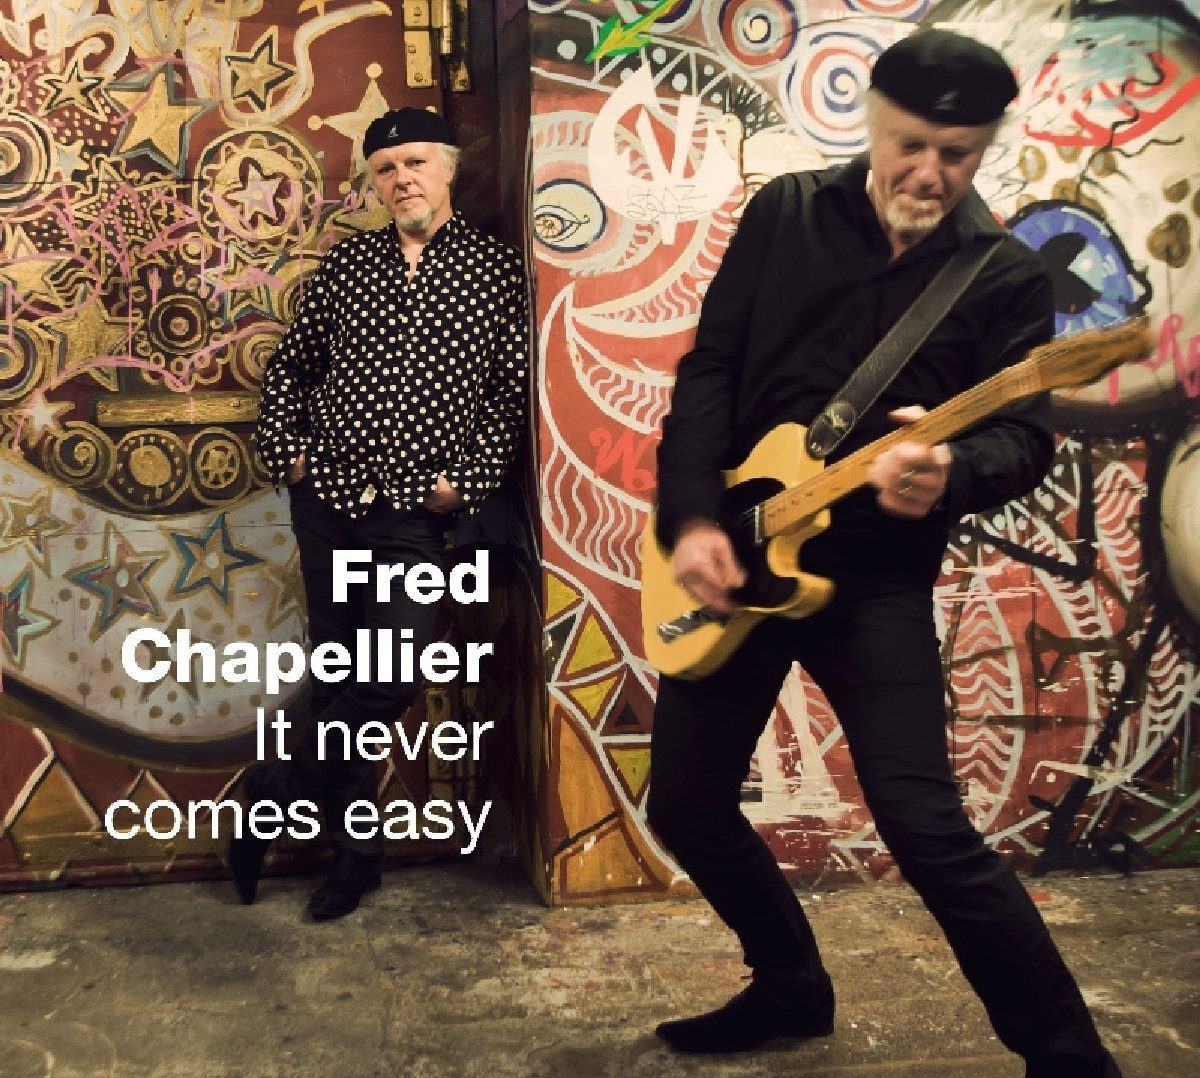 FRED CHAPELLIER – It never comes easy